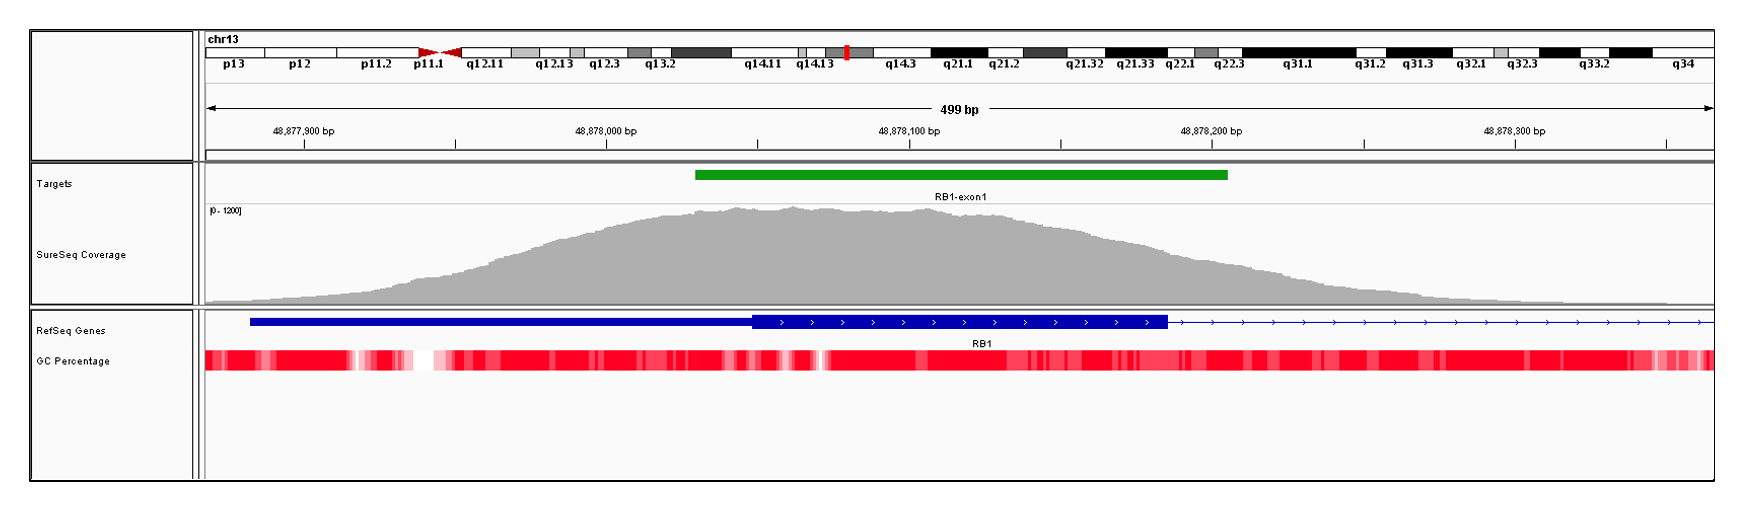 RB1 Exon 1 (hg19 chr13:48877883-48878185). Depth of coverage per base (grey). Targeted region (green). Gene coding region as defined by RefSeq (blue). GC percentage (red). Image